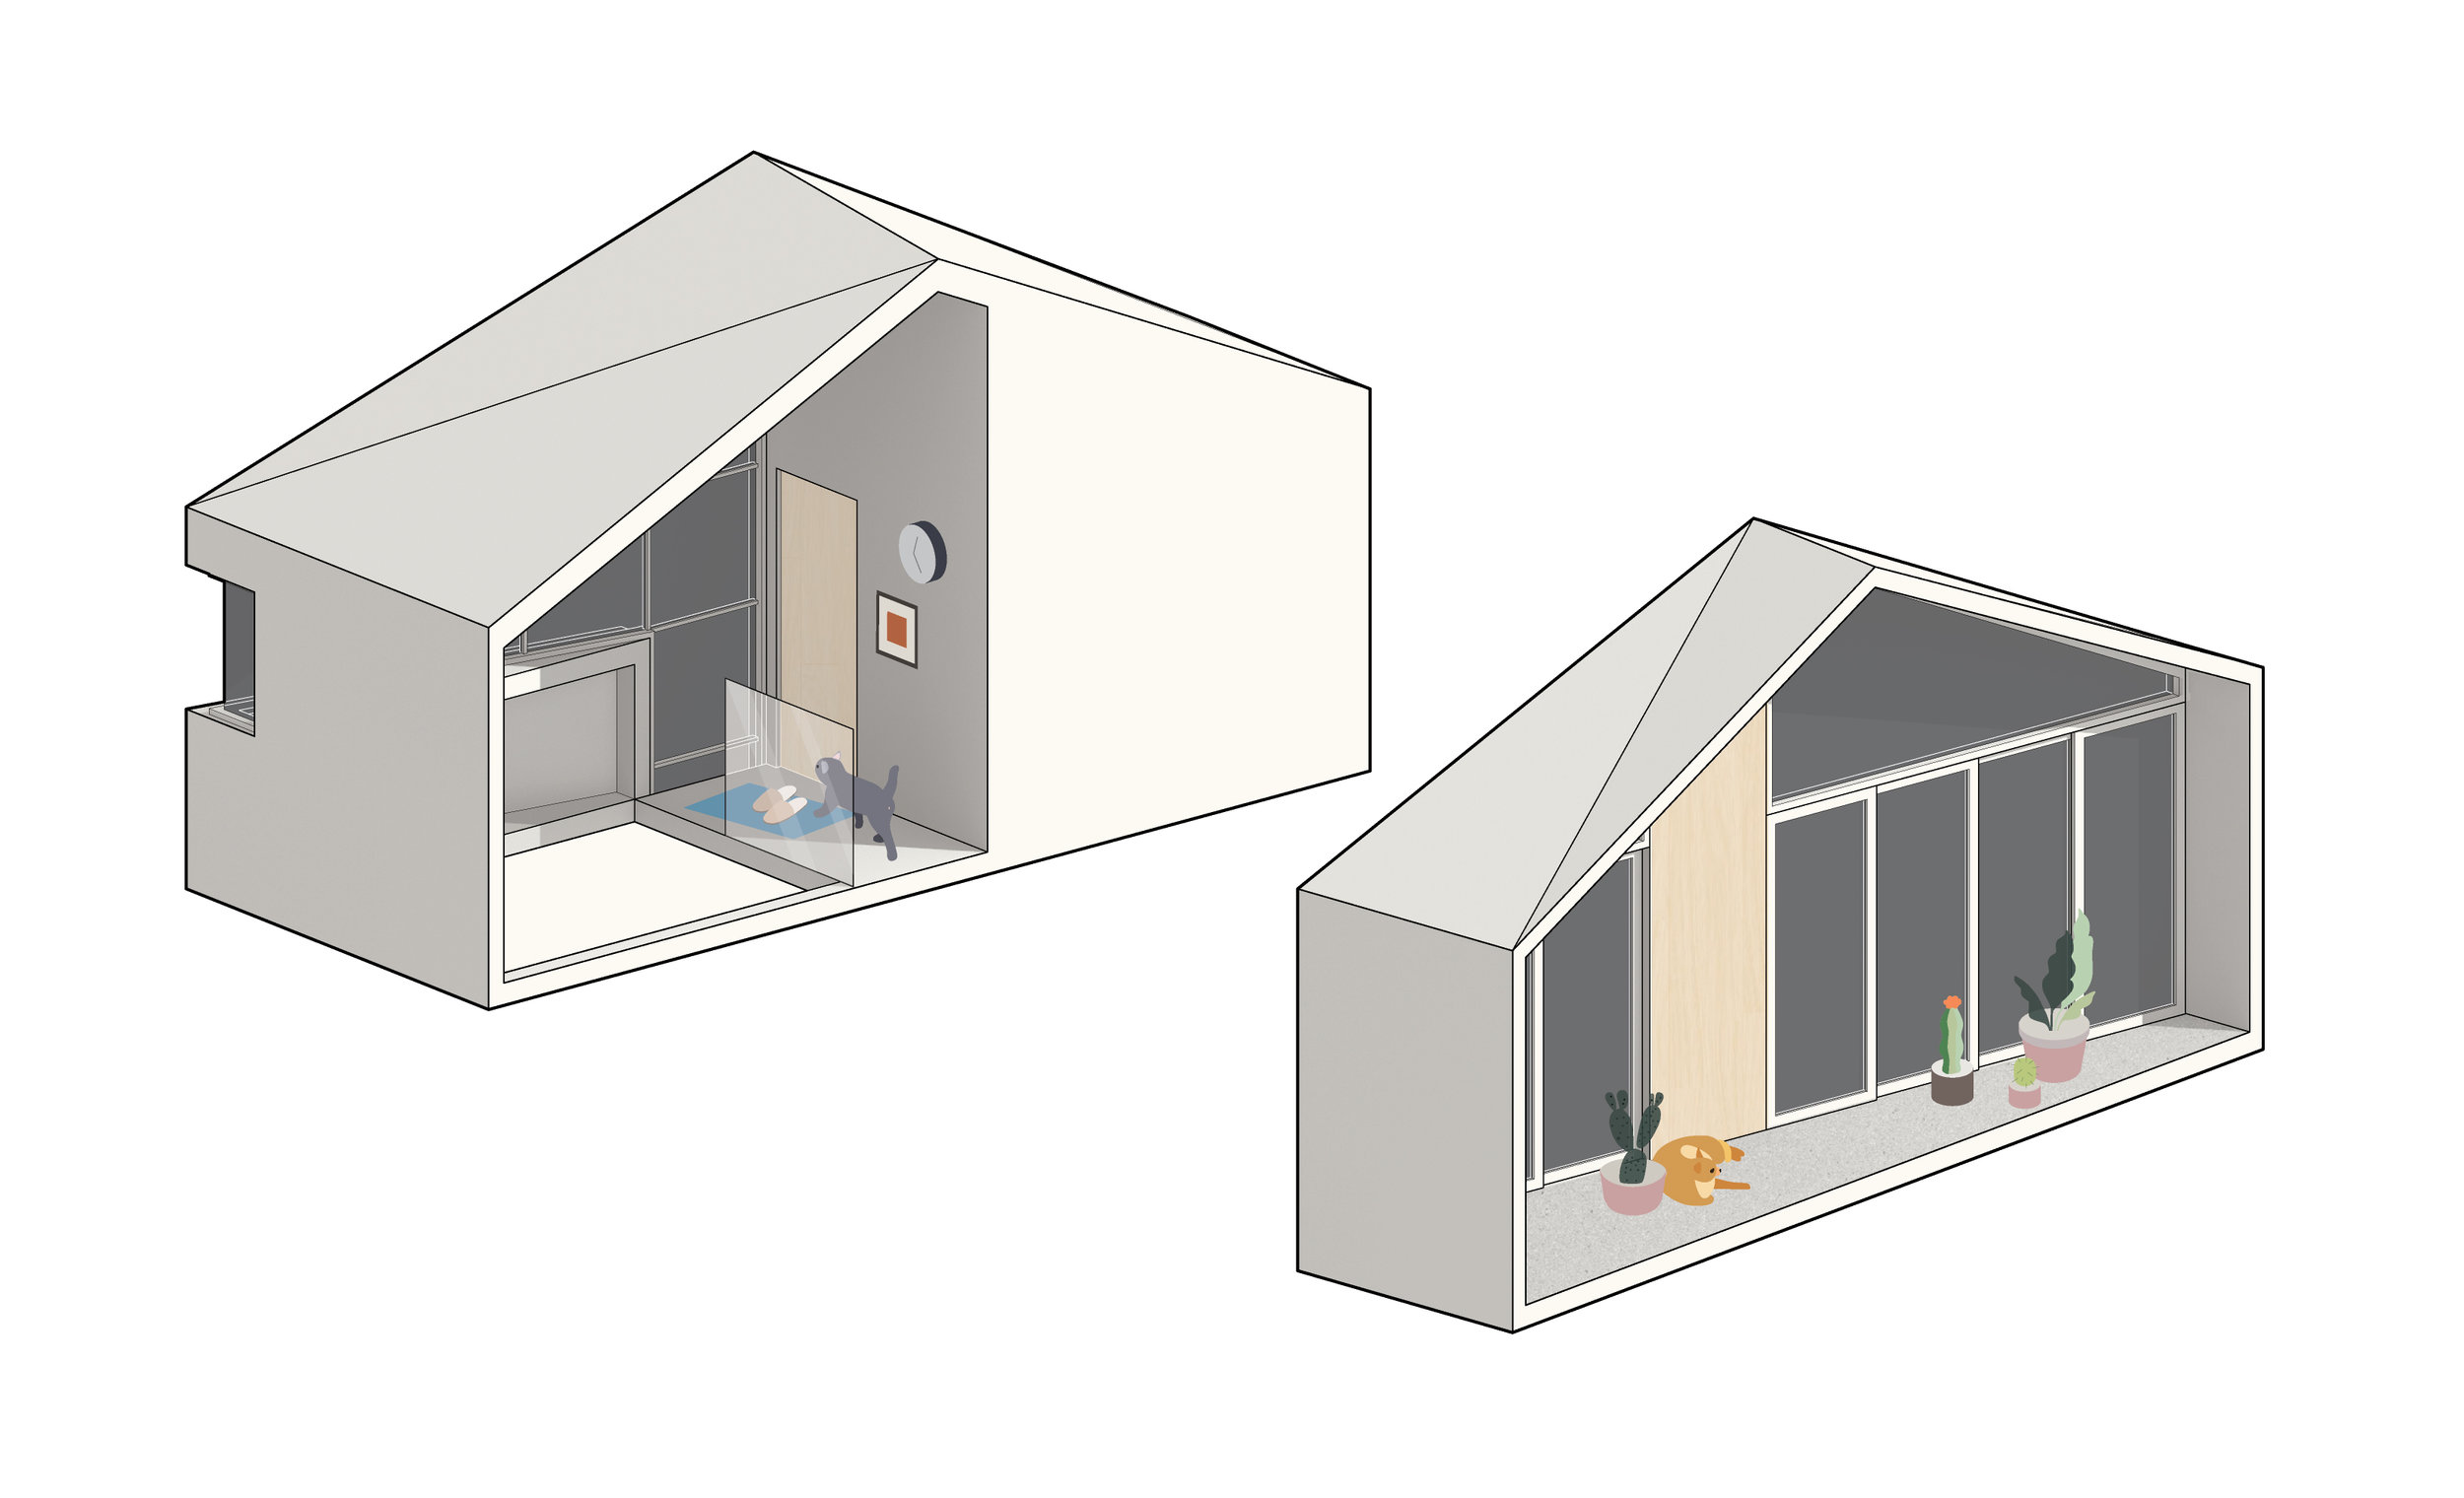 """Second-floor """"A"""" bookend (left) incorporates the bathroom and stair. Second-floor """"B"""" bookend (right)incorporates glazing and the door systems. The doors are setback to provide an optional balcony."""